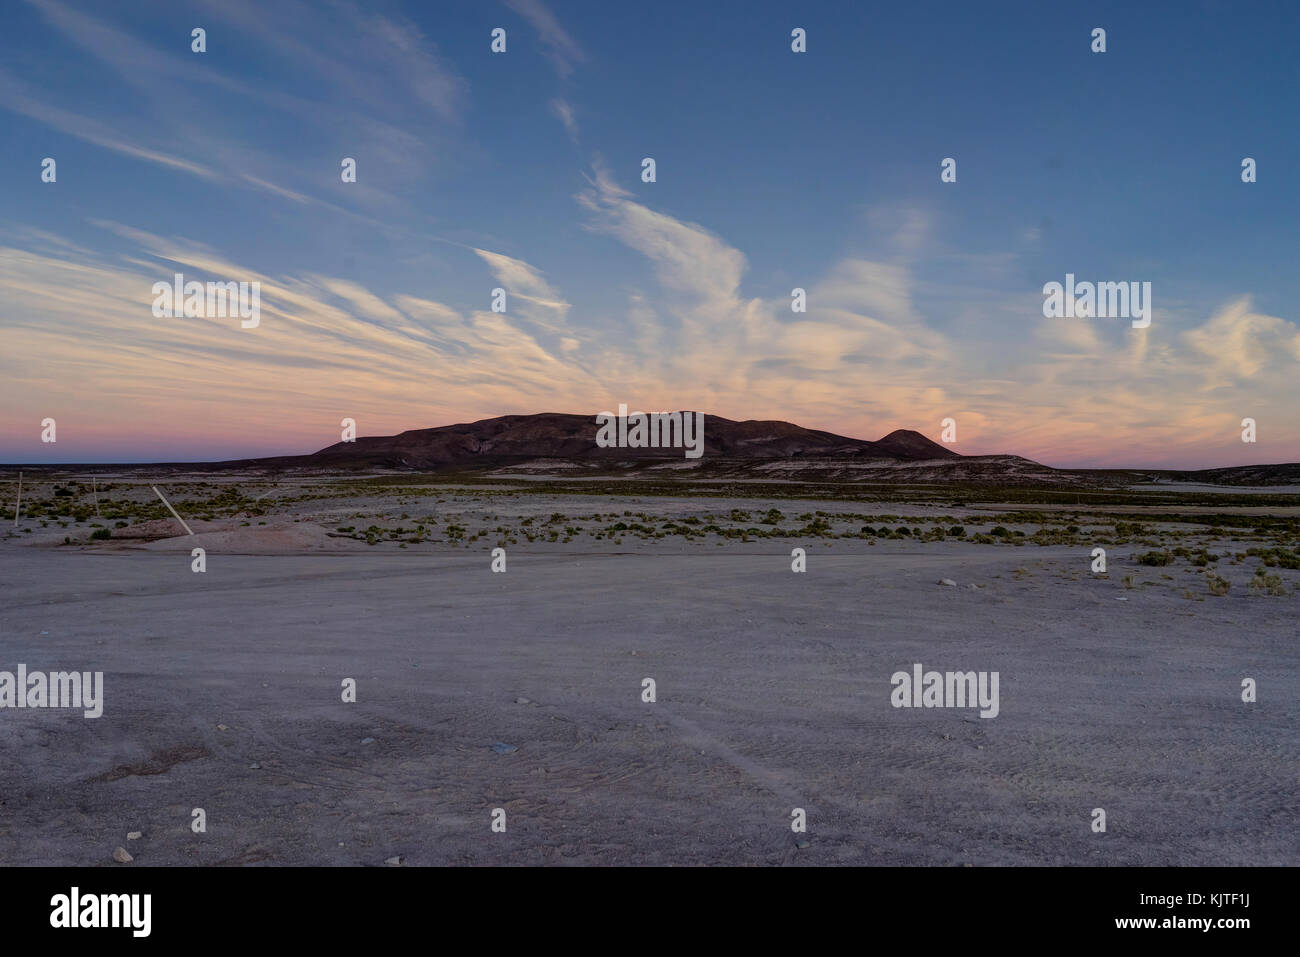 Photo taken in August 2017 in Altiplano Bolivia, South America: Sunrise Sunset Mountains View over Altiplano Desert - Stock Image